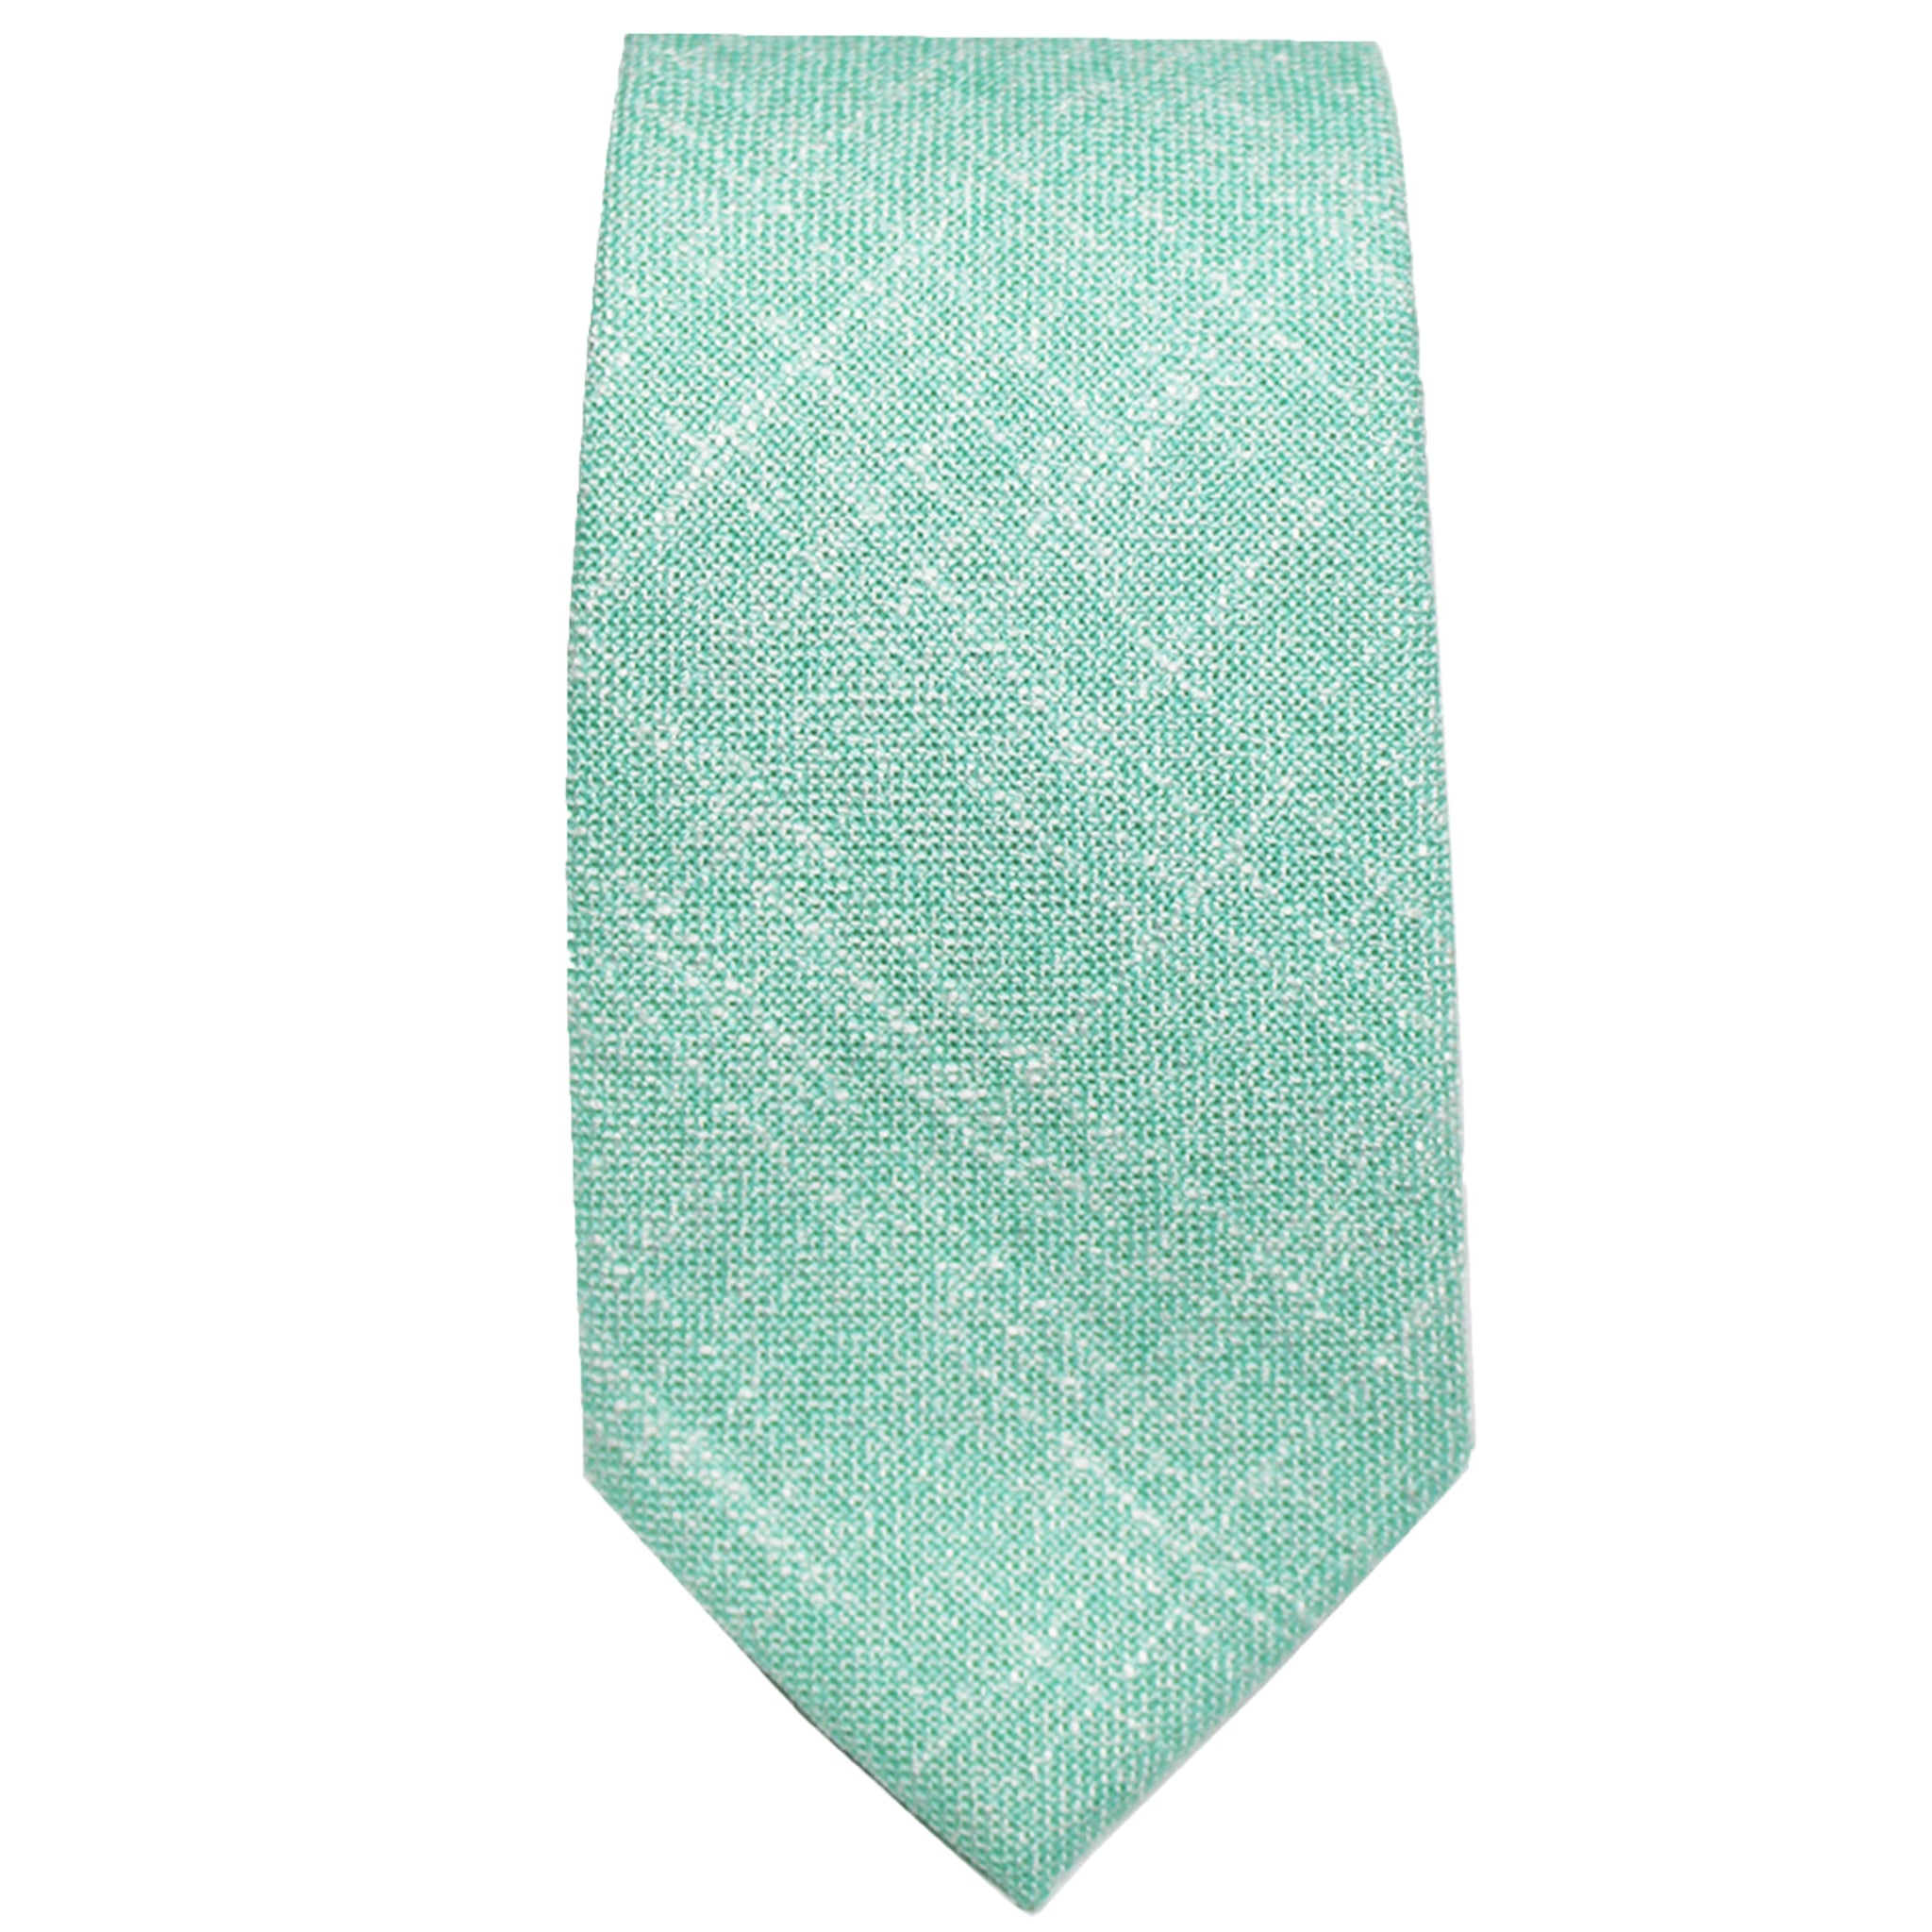 Heather Seafoam Green Tie